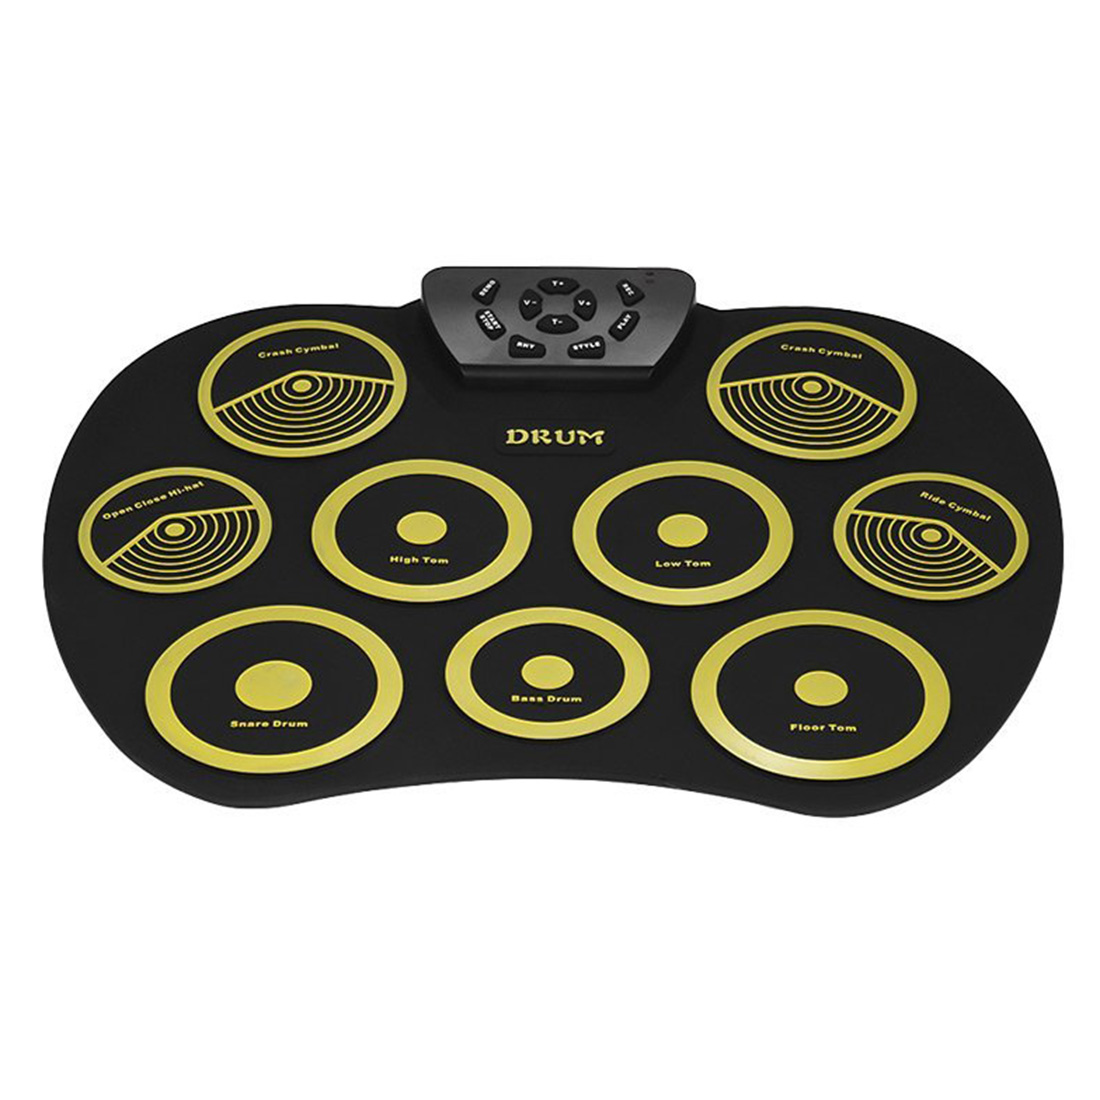 New Portable Electronics Drum Set Roll Up Drum Kit 9 Silicone Pads USB Powered With Foot Pedals Drumsticks USB Cable